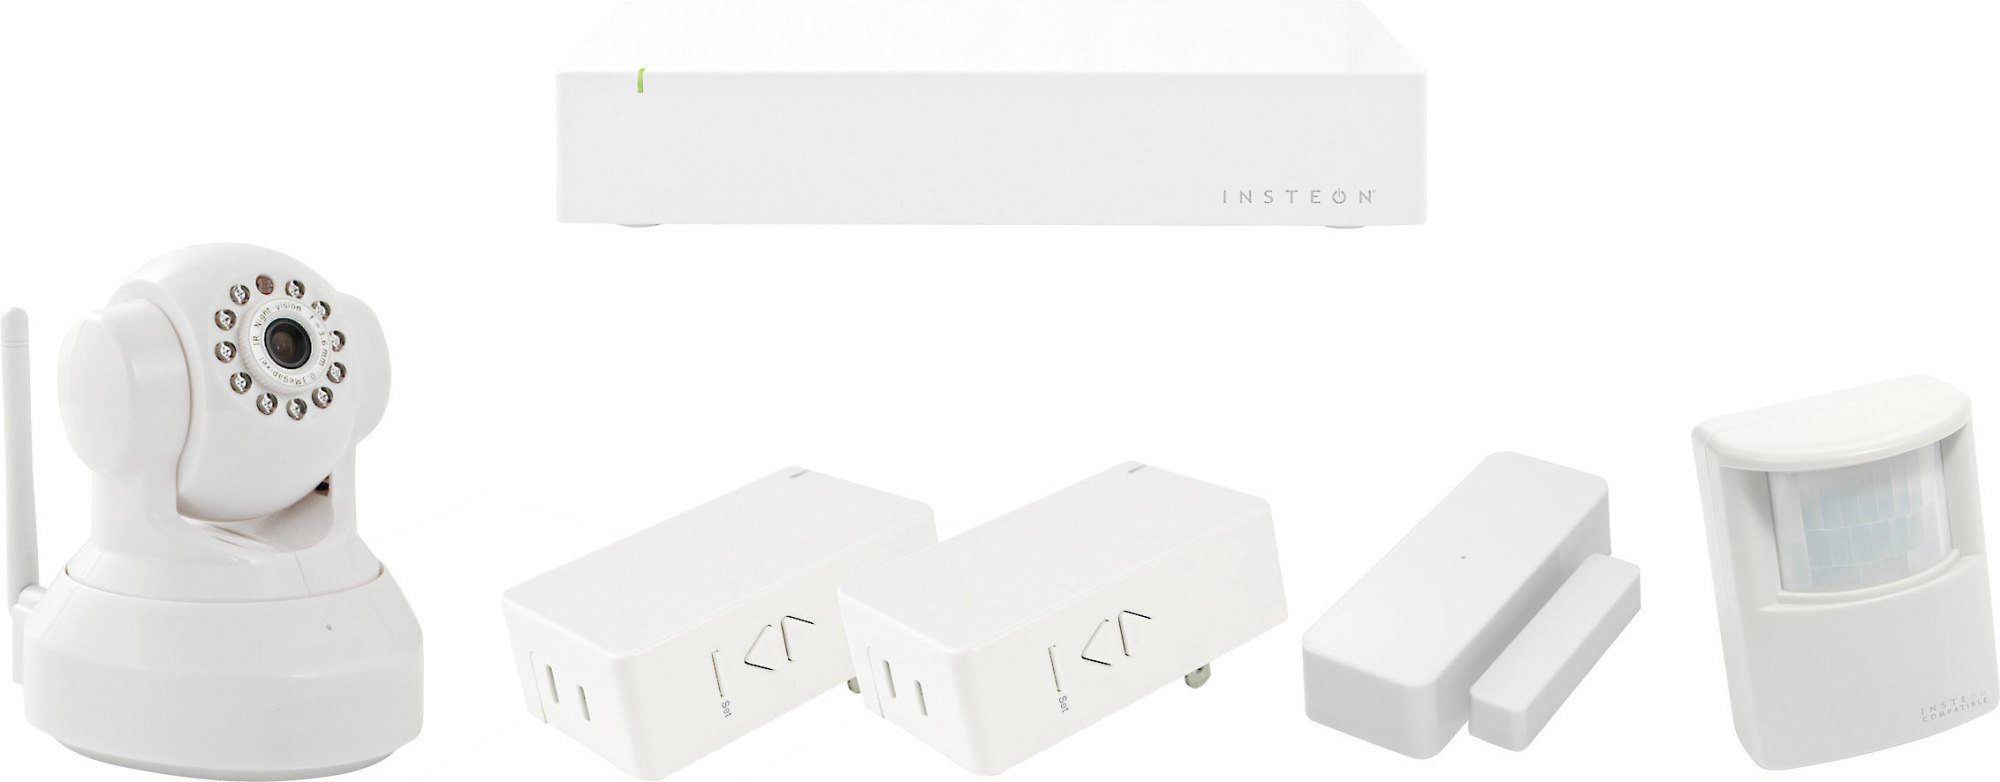 hight resolution of insteon connected kit home automation kit with sensor package and wireless indoor camera at crutchfield com